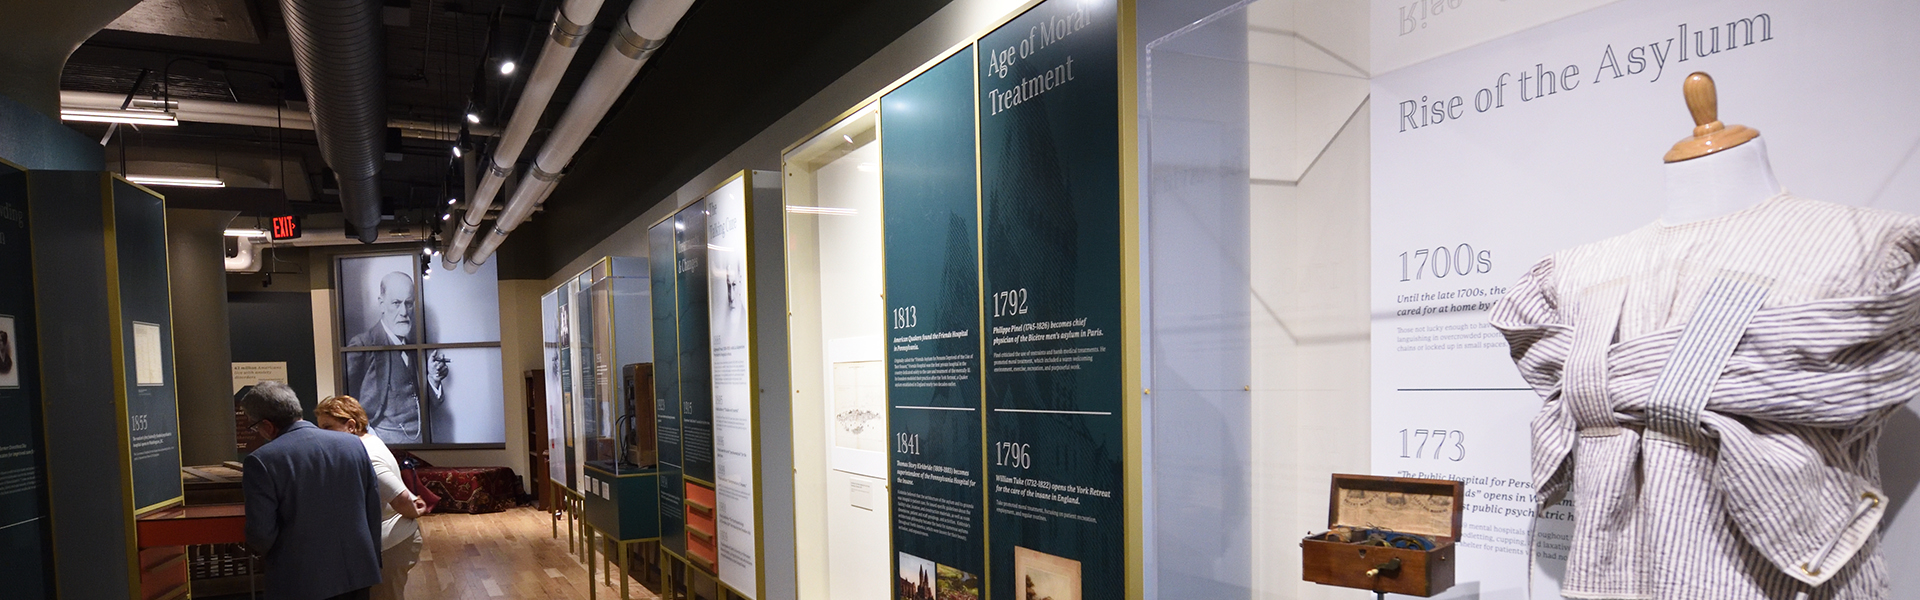 museum displays about asylums and Sigmund Freud